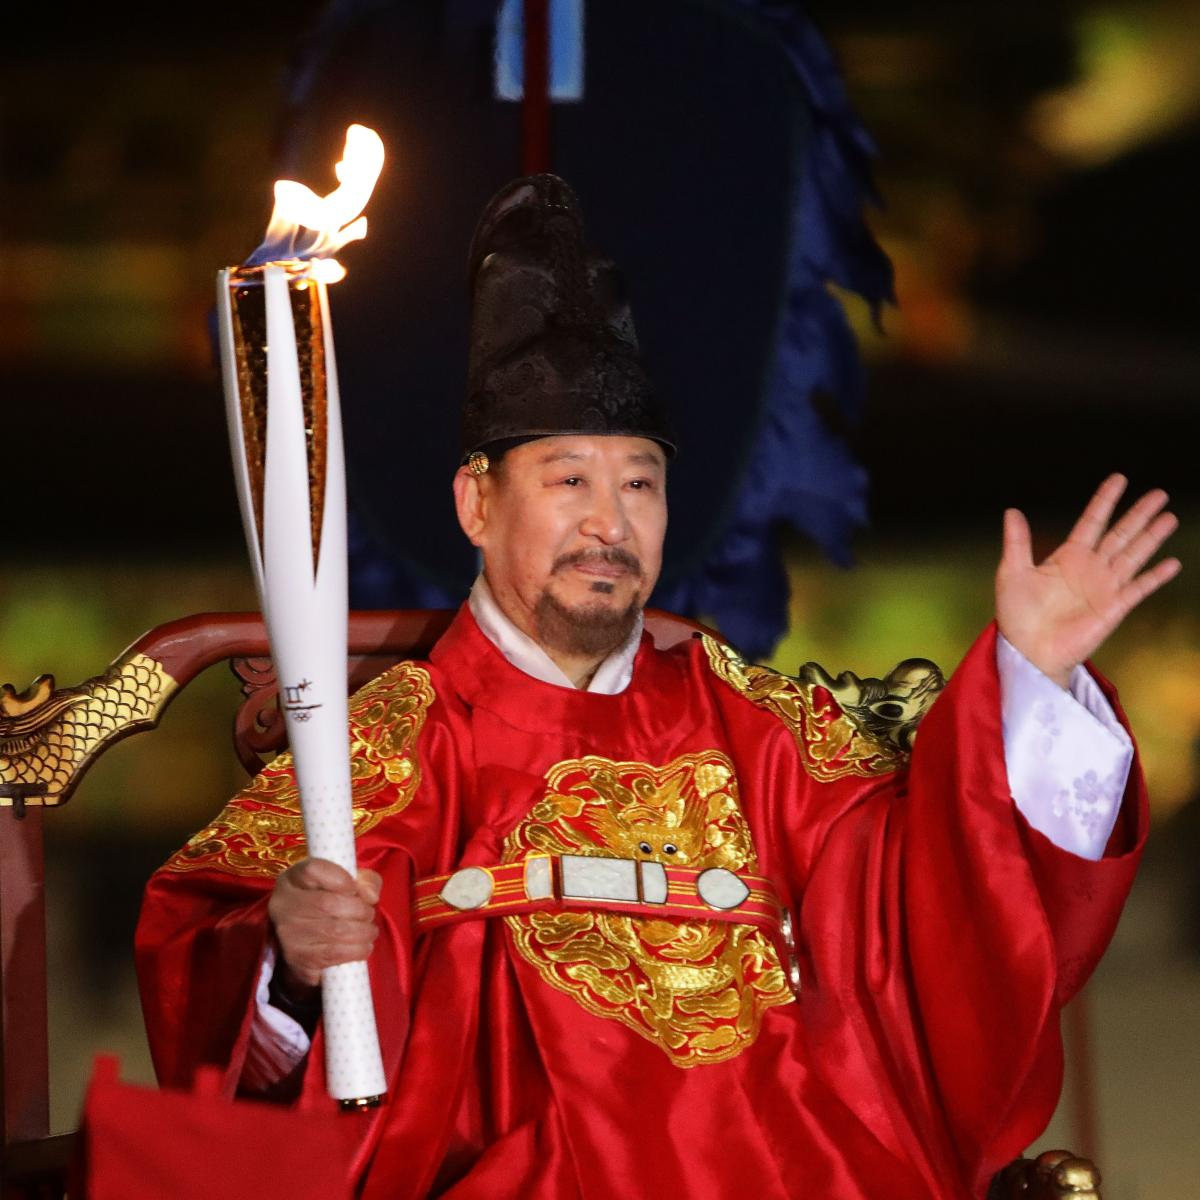 Olympic Torch Lighting 2018 Significance Of Opening